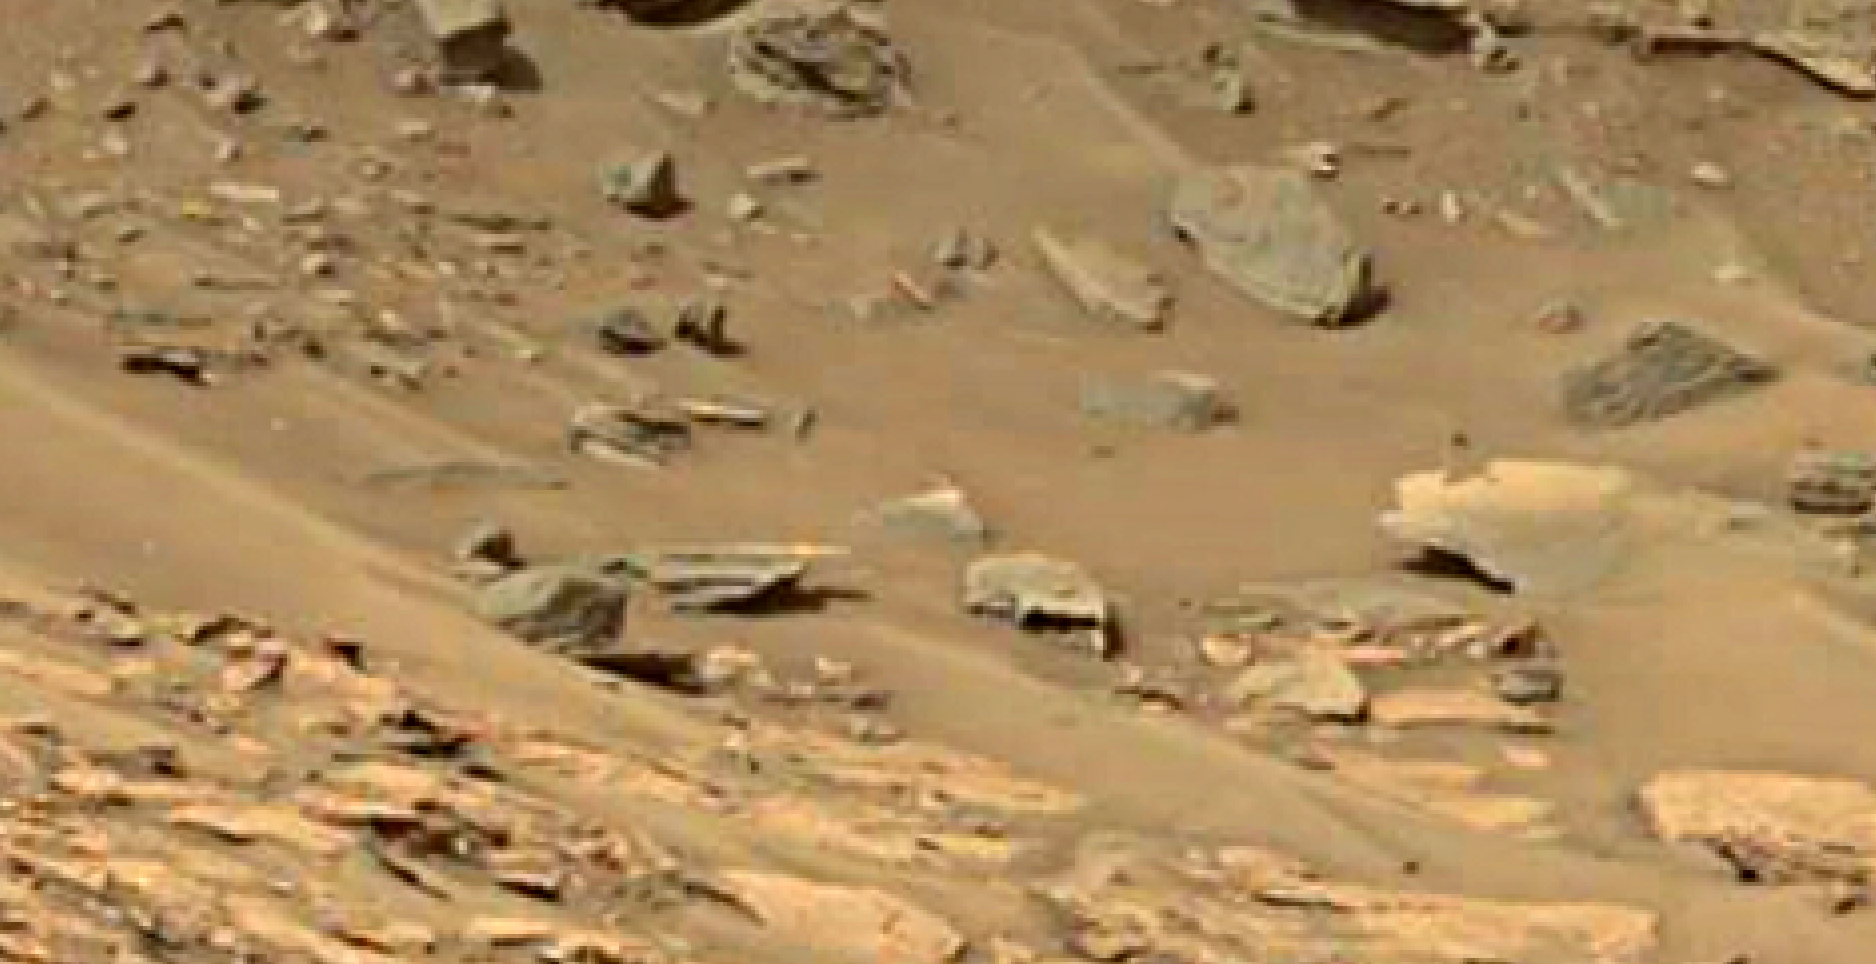 mars-sol-1451-anomaly-artifacts-3-was-life-on-mars